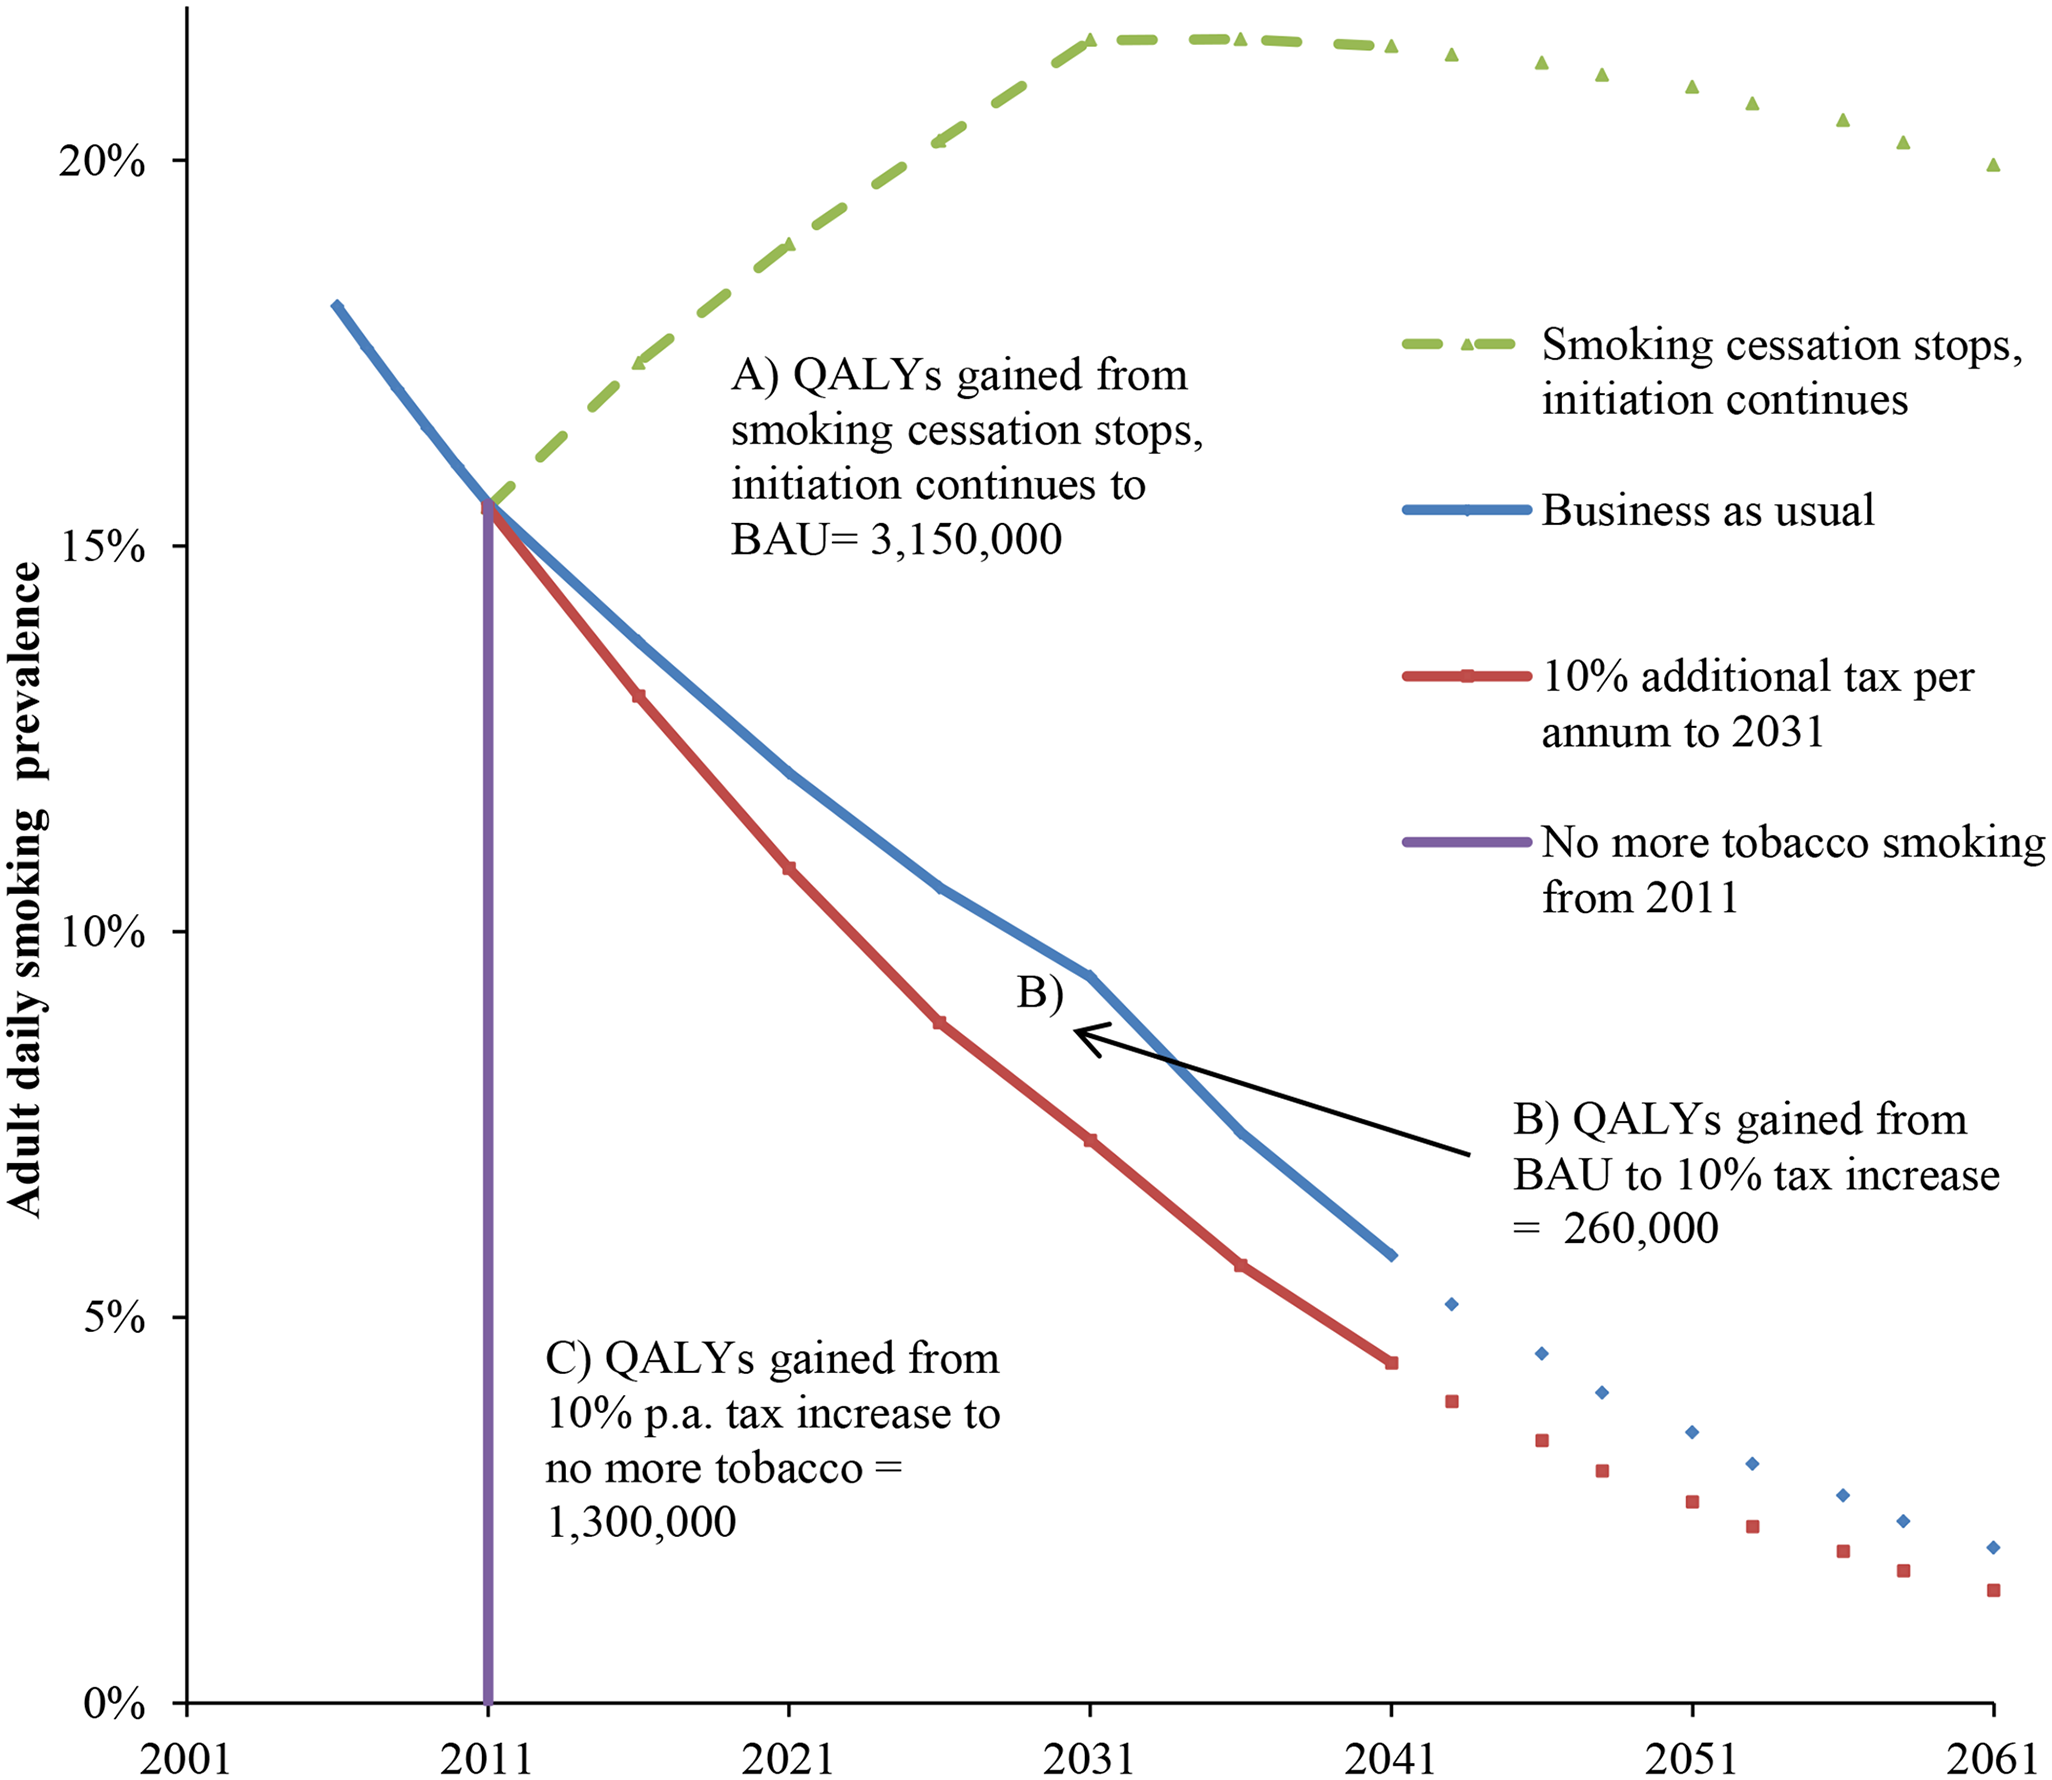 Future smoking prevalence in the New Zealand 2011 population by scenario and QALY gains between scenarios.